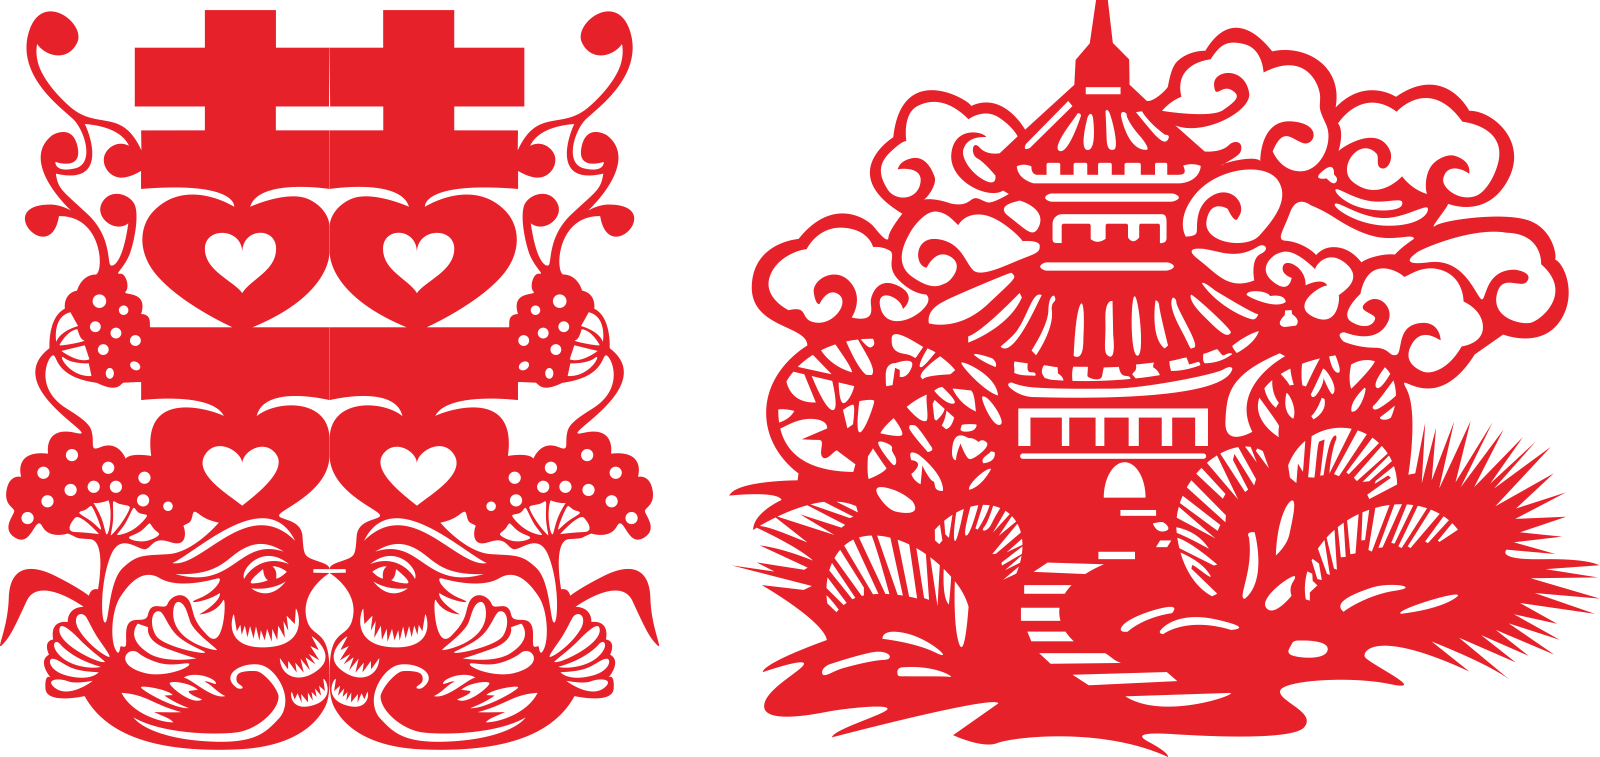 Beautiful Chinese traditional wedding paper-cutting art design -  Vectors Free Download #.1